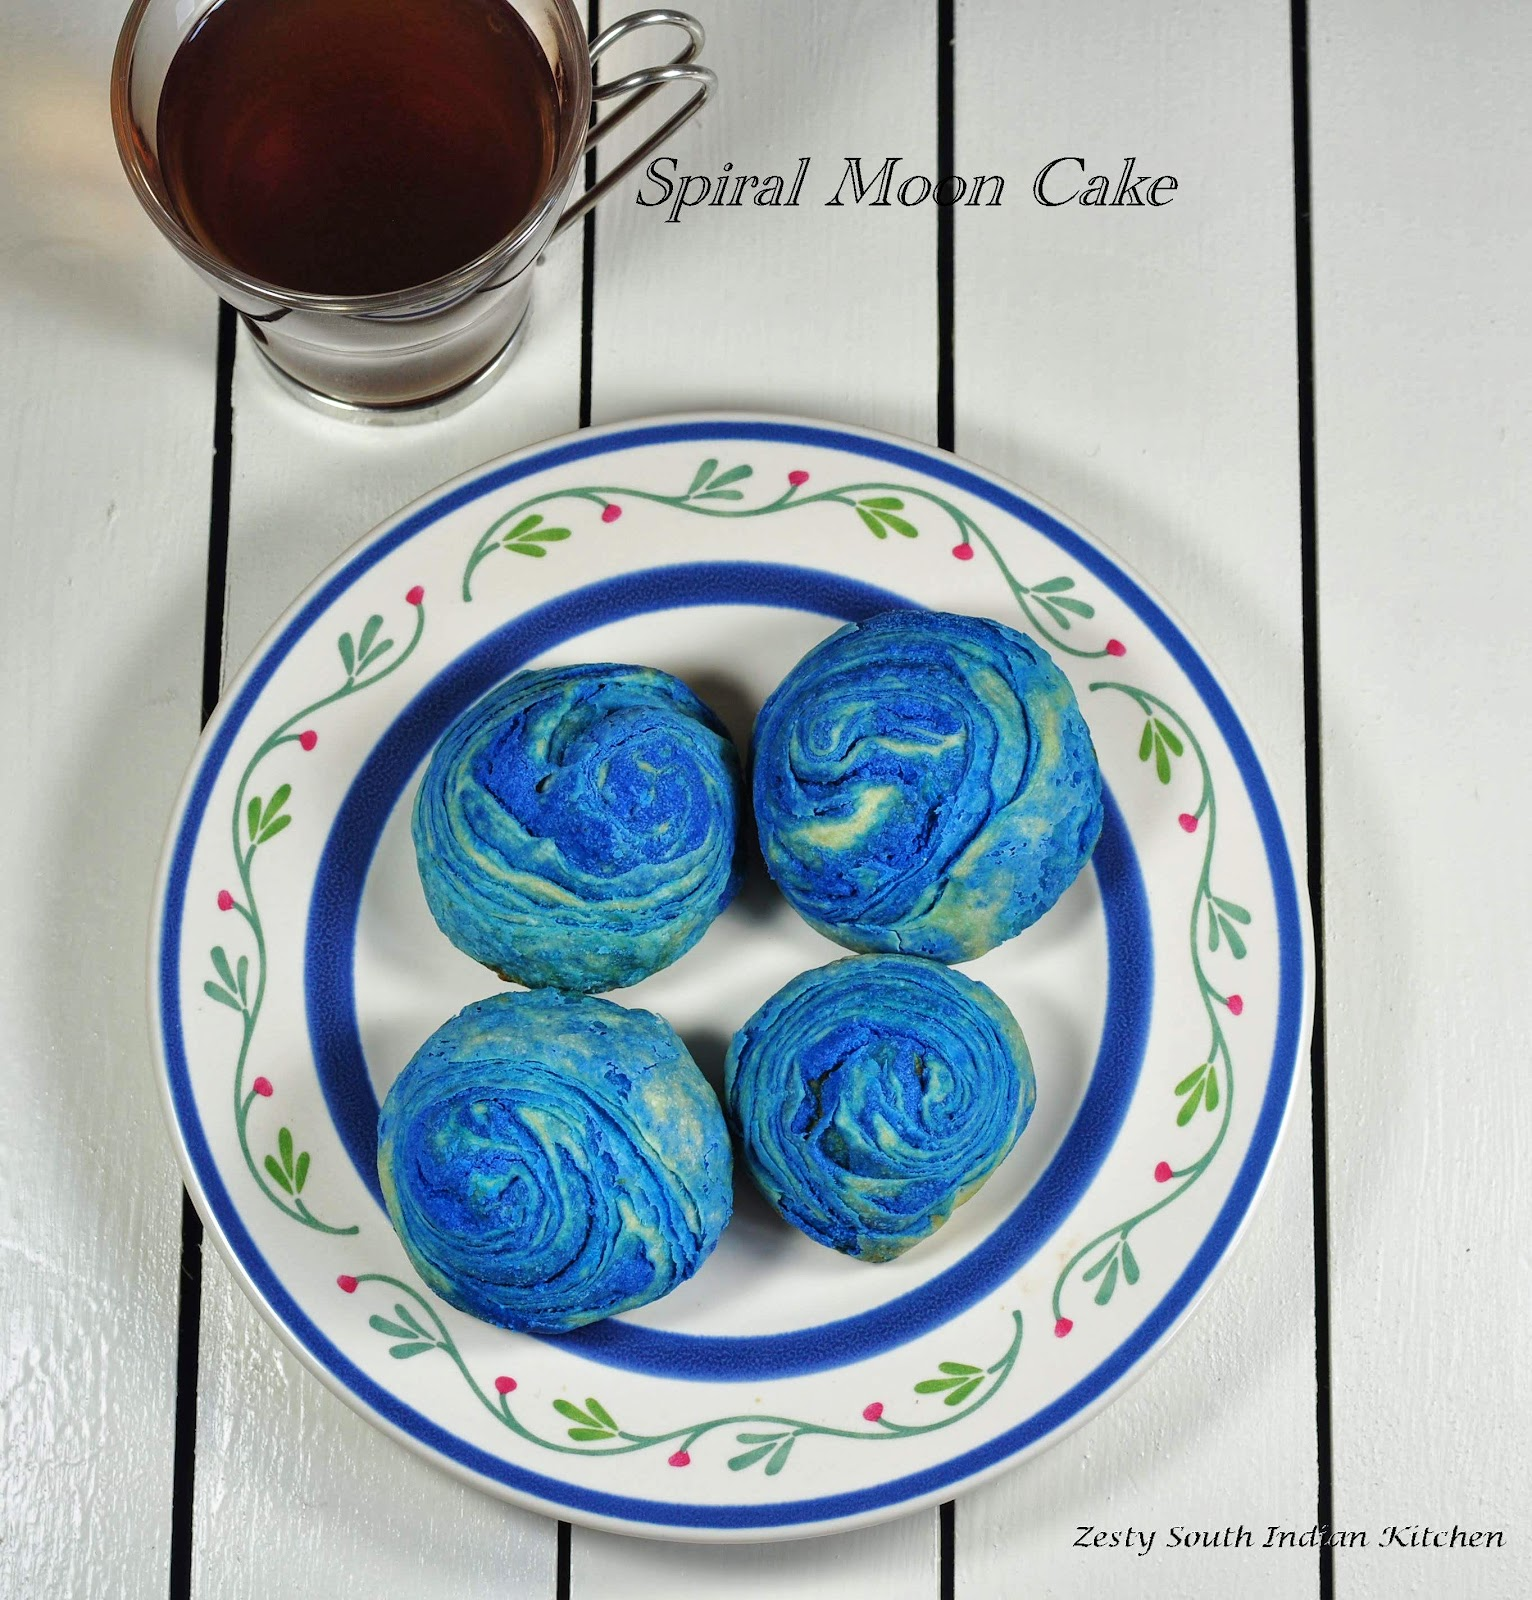 Chinese Spiral Moon Cake (Teochew style mooncakes) with Savory Mung ...